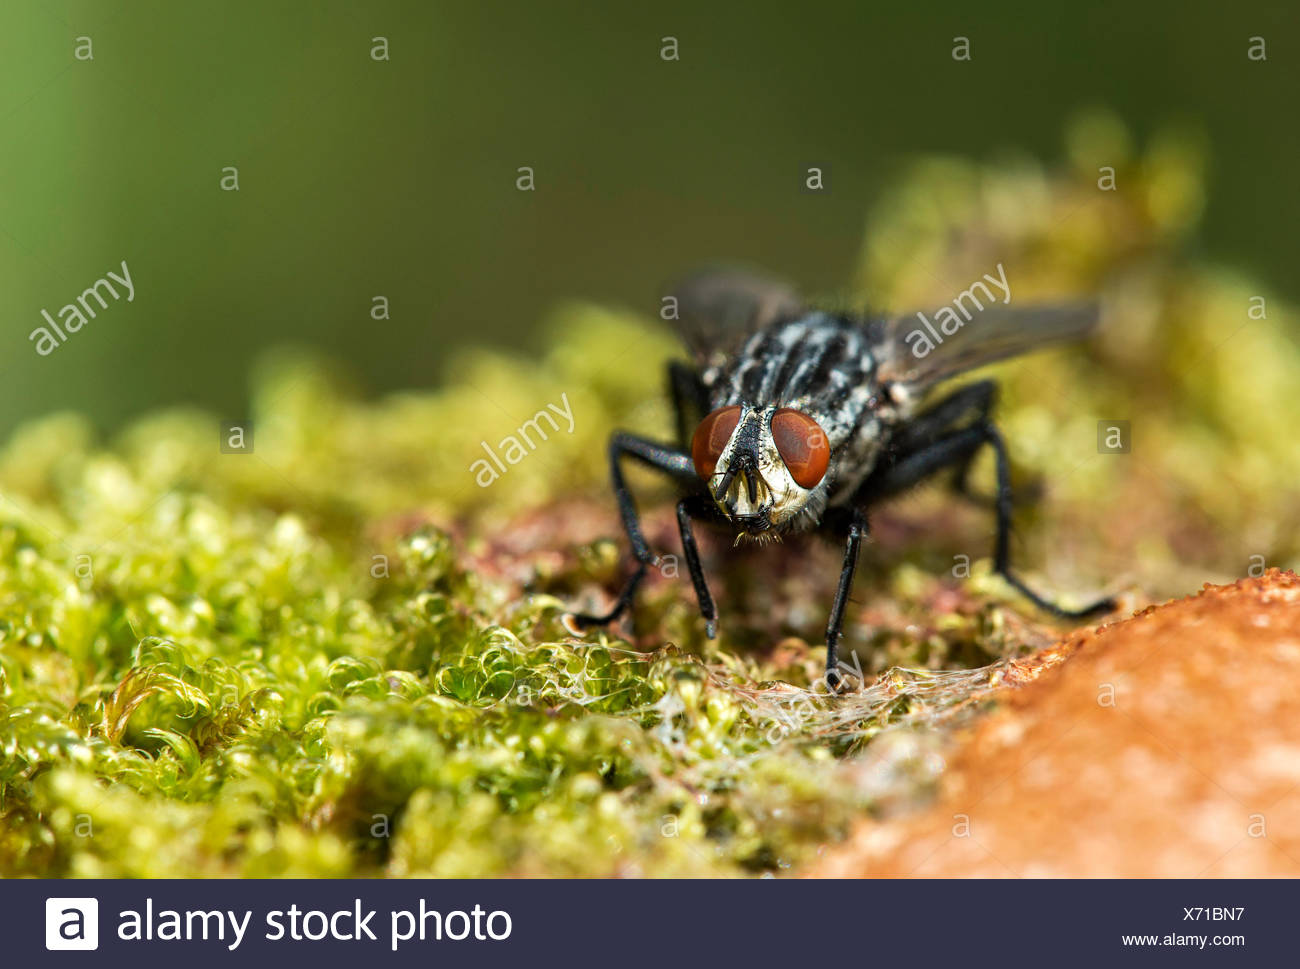 Blowfly (Calliphora vicina) on a slime mold, Switzerland - Stock Image